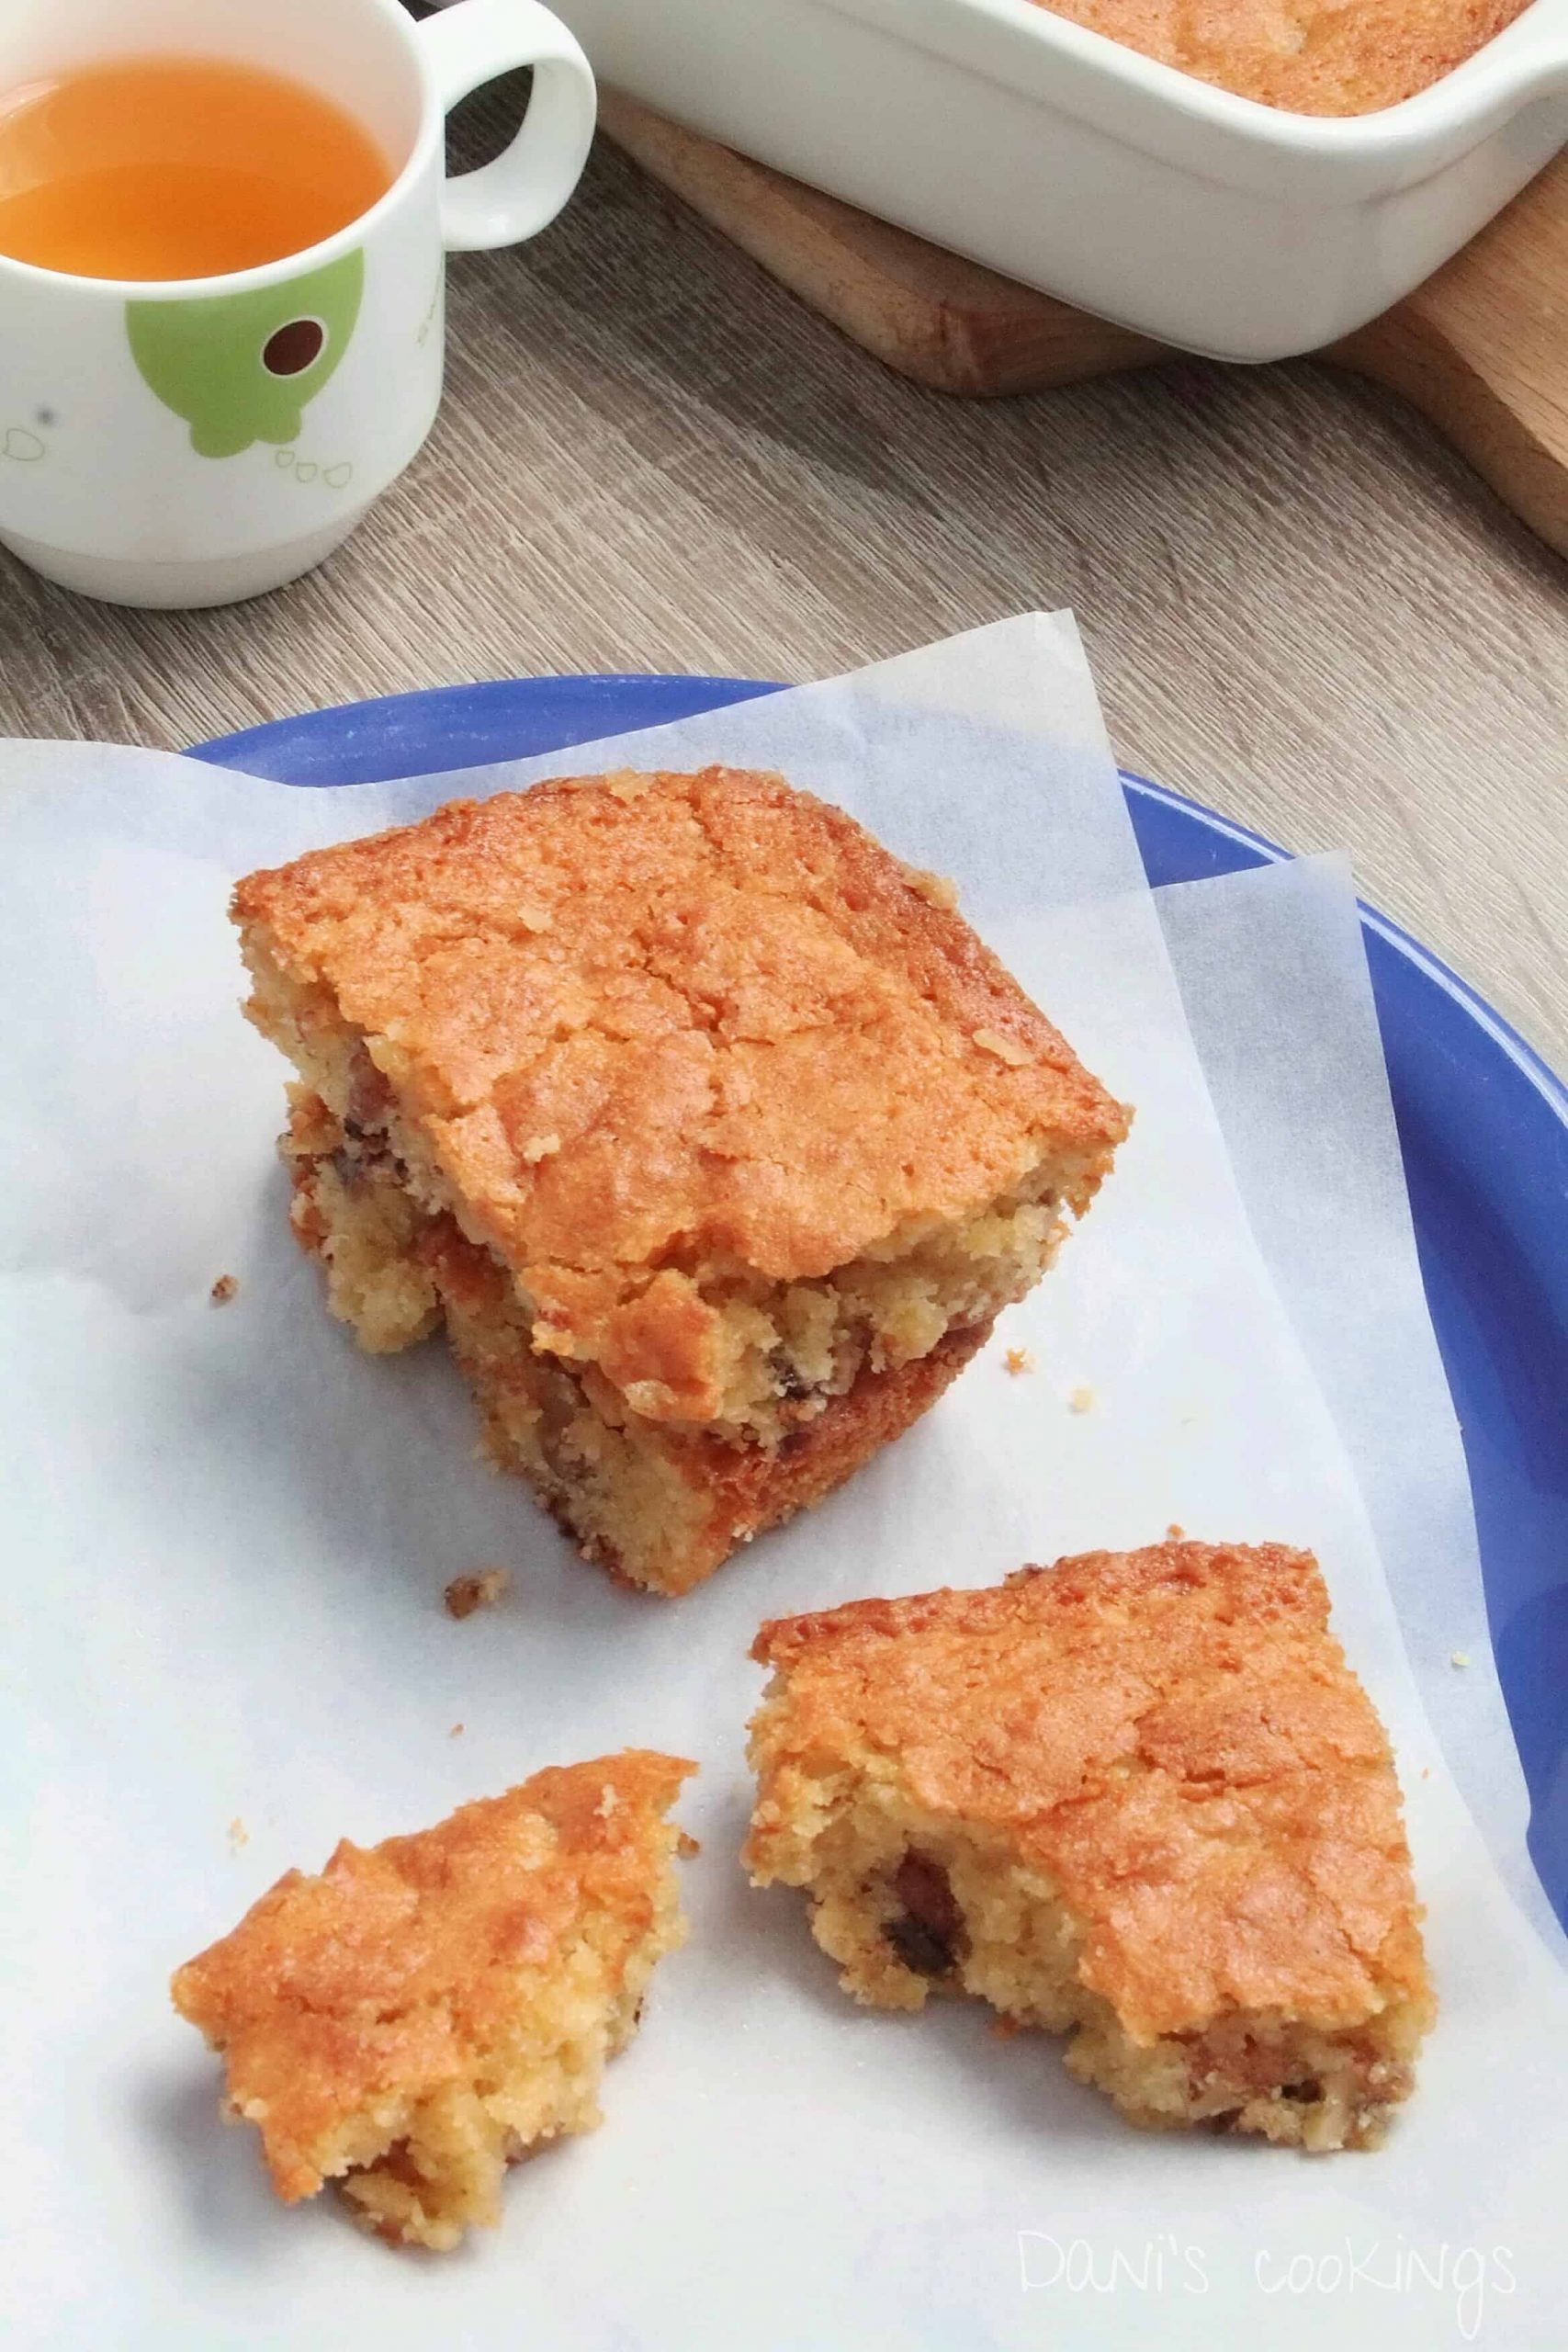 blondies on a plate, one broken, with tea aside